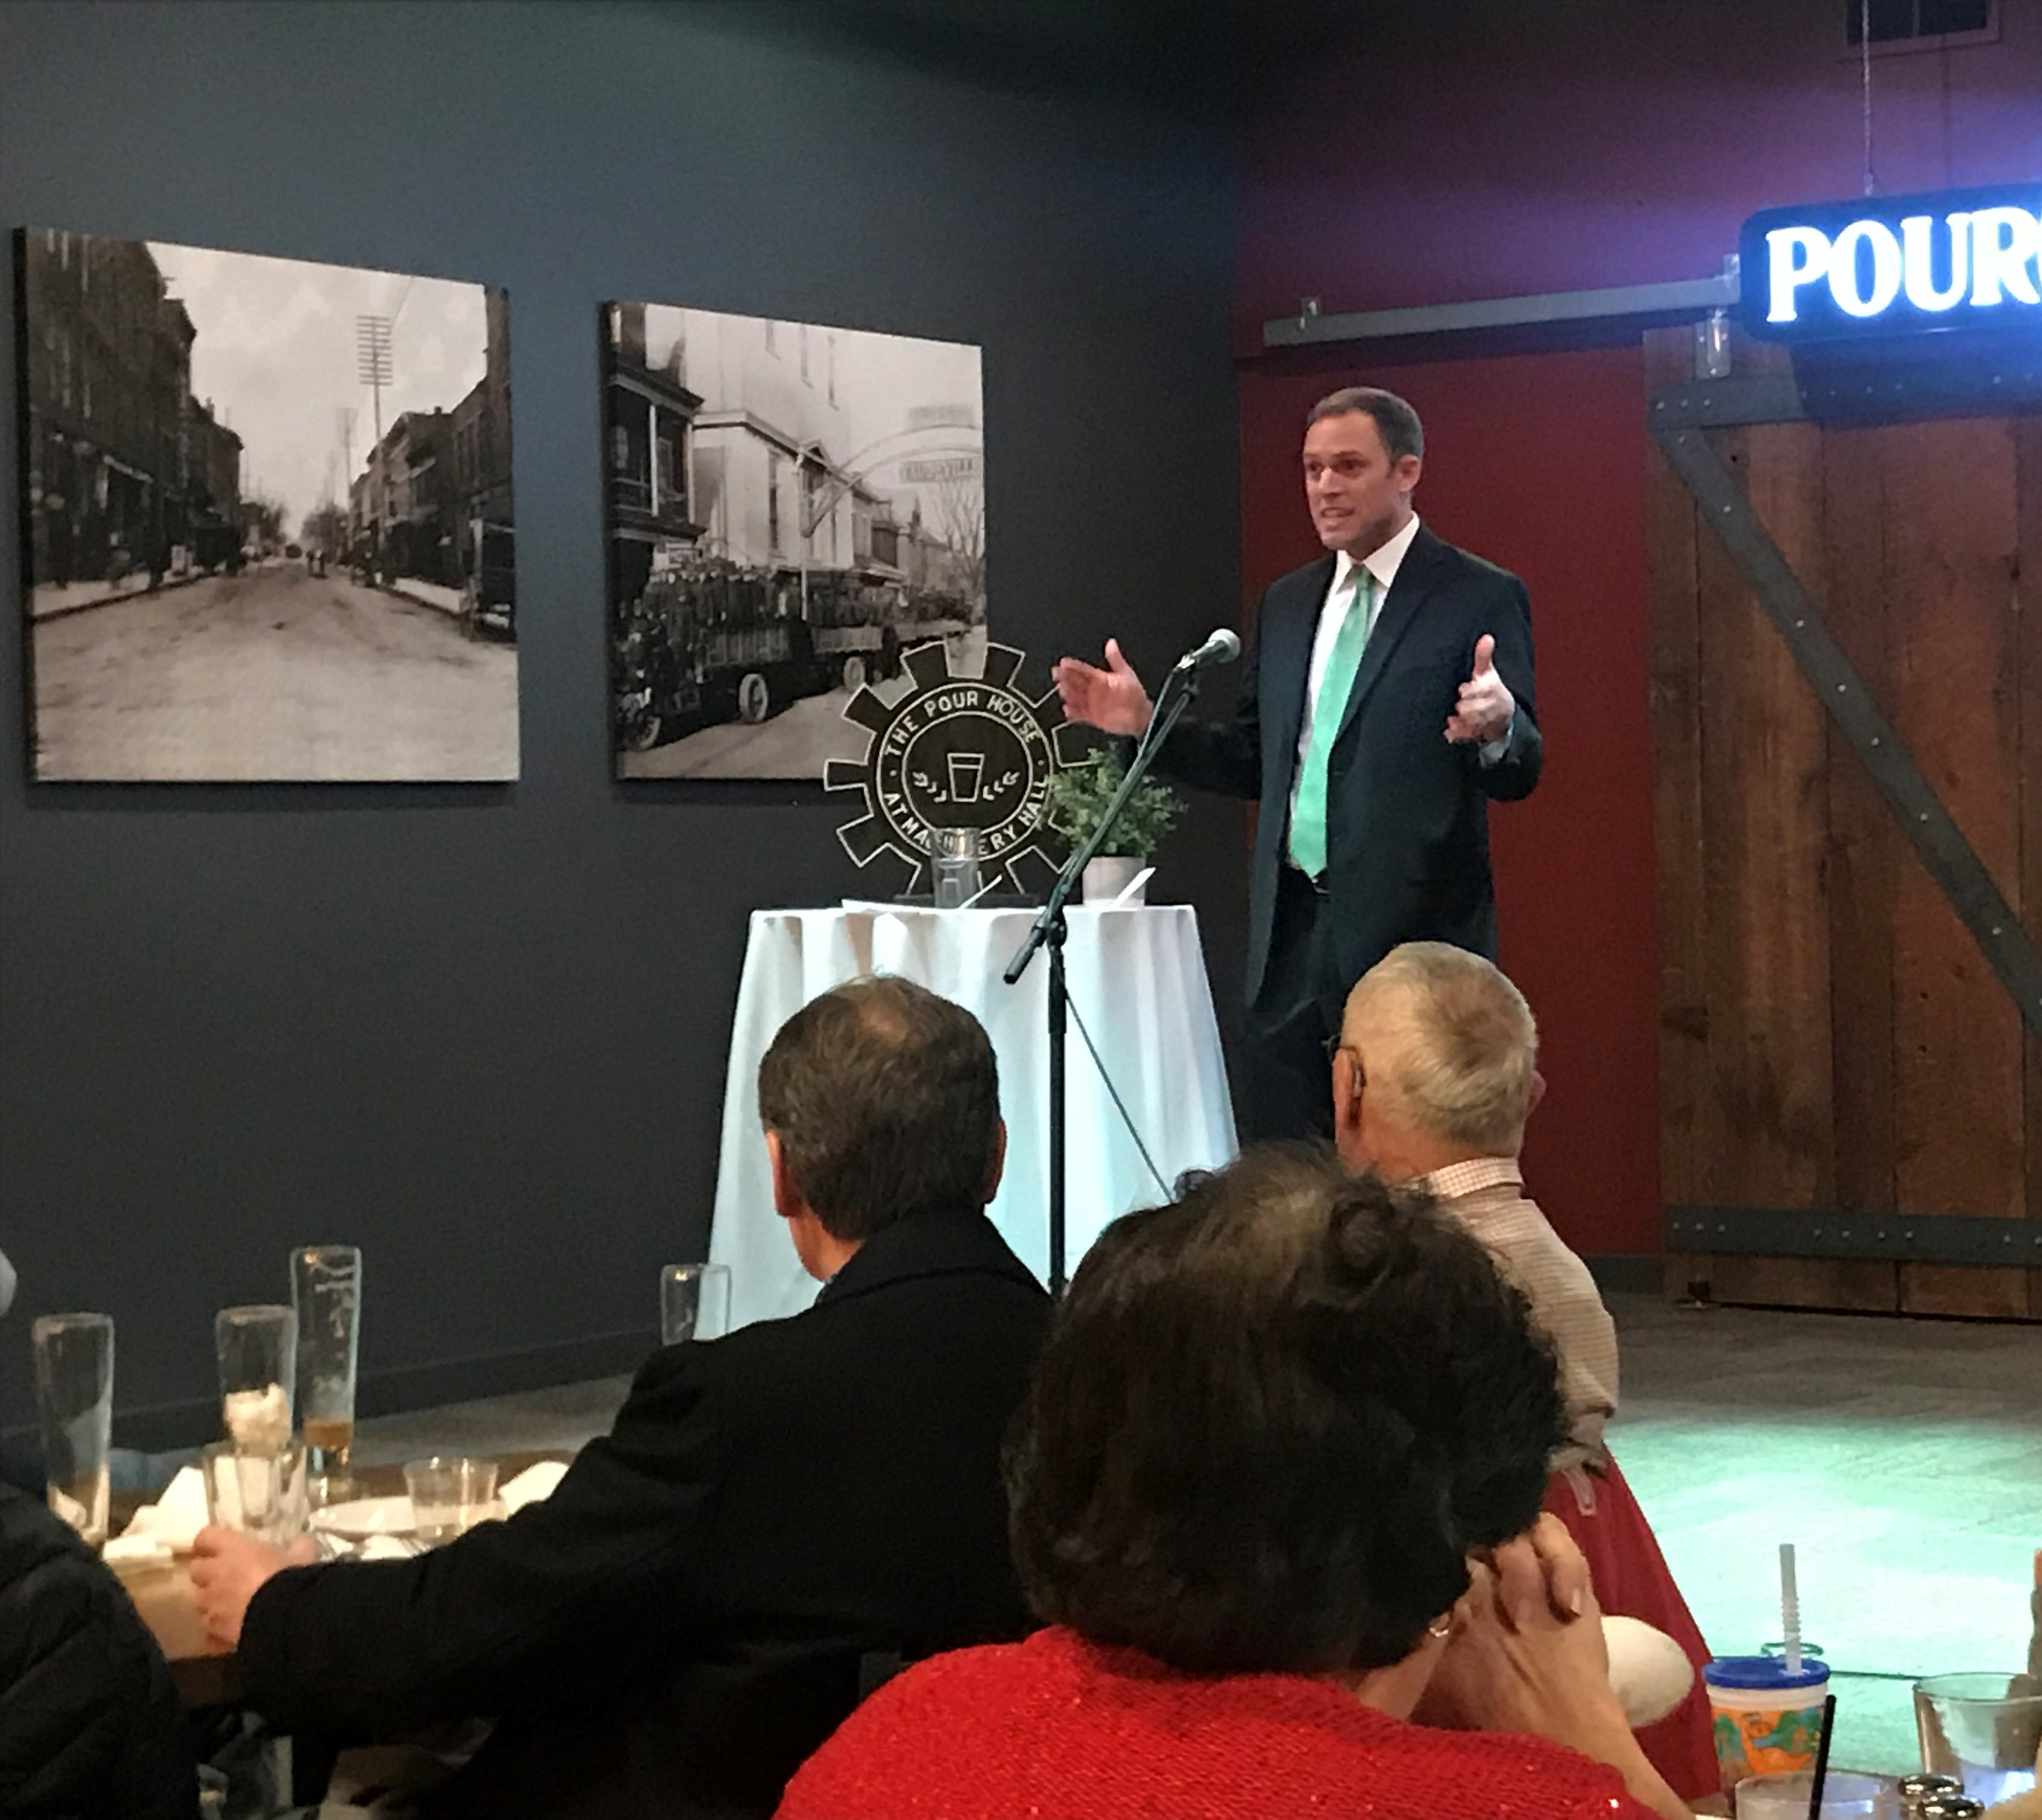 Mayor Luke Feeney delivers his campaign kickoff speech at The Pour House at Machinery Hall on Tuesday, January 22.